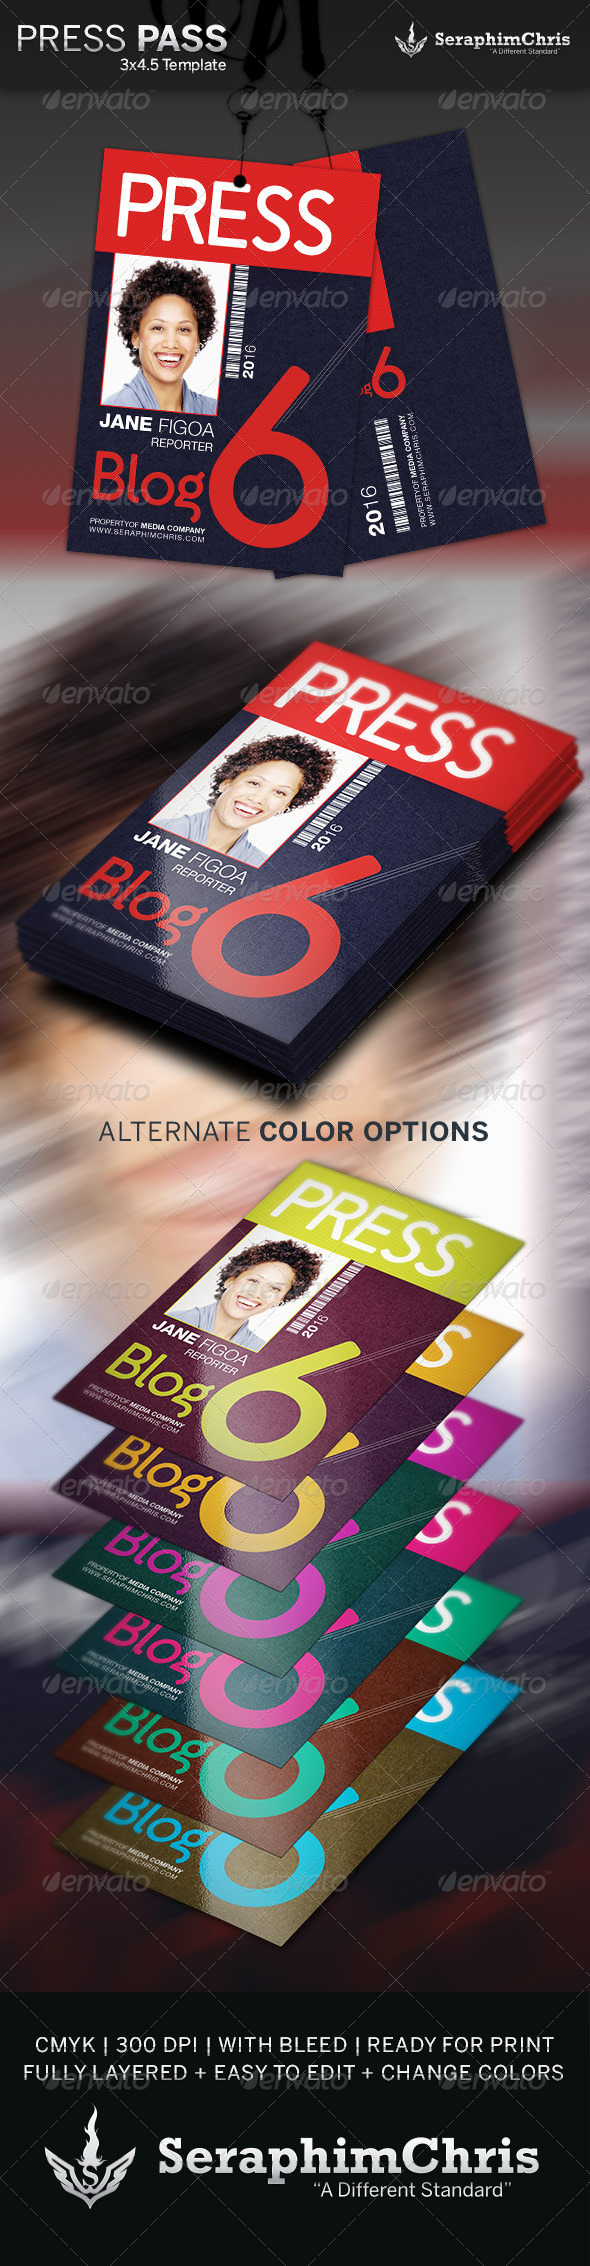 press badge template.html